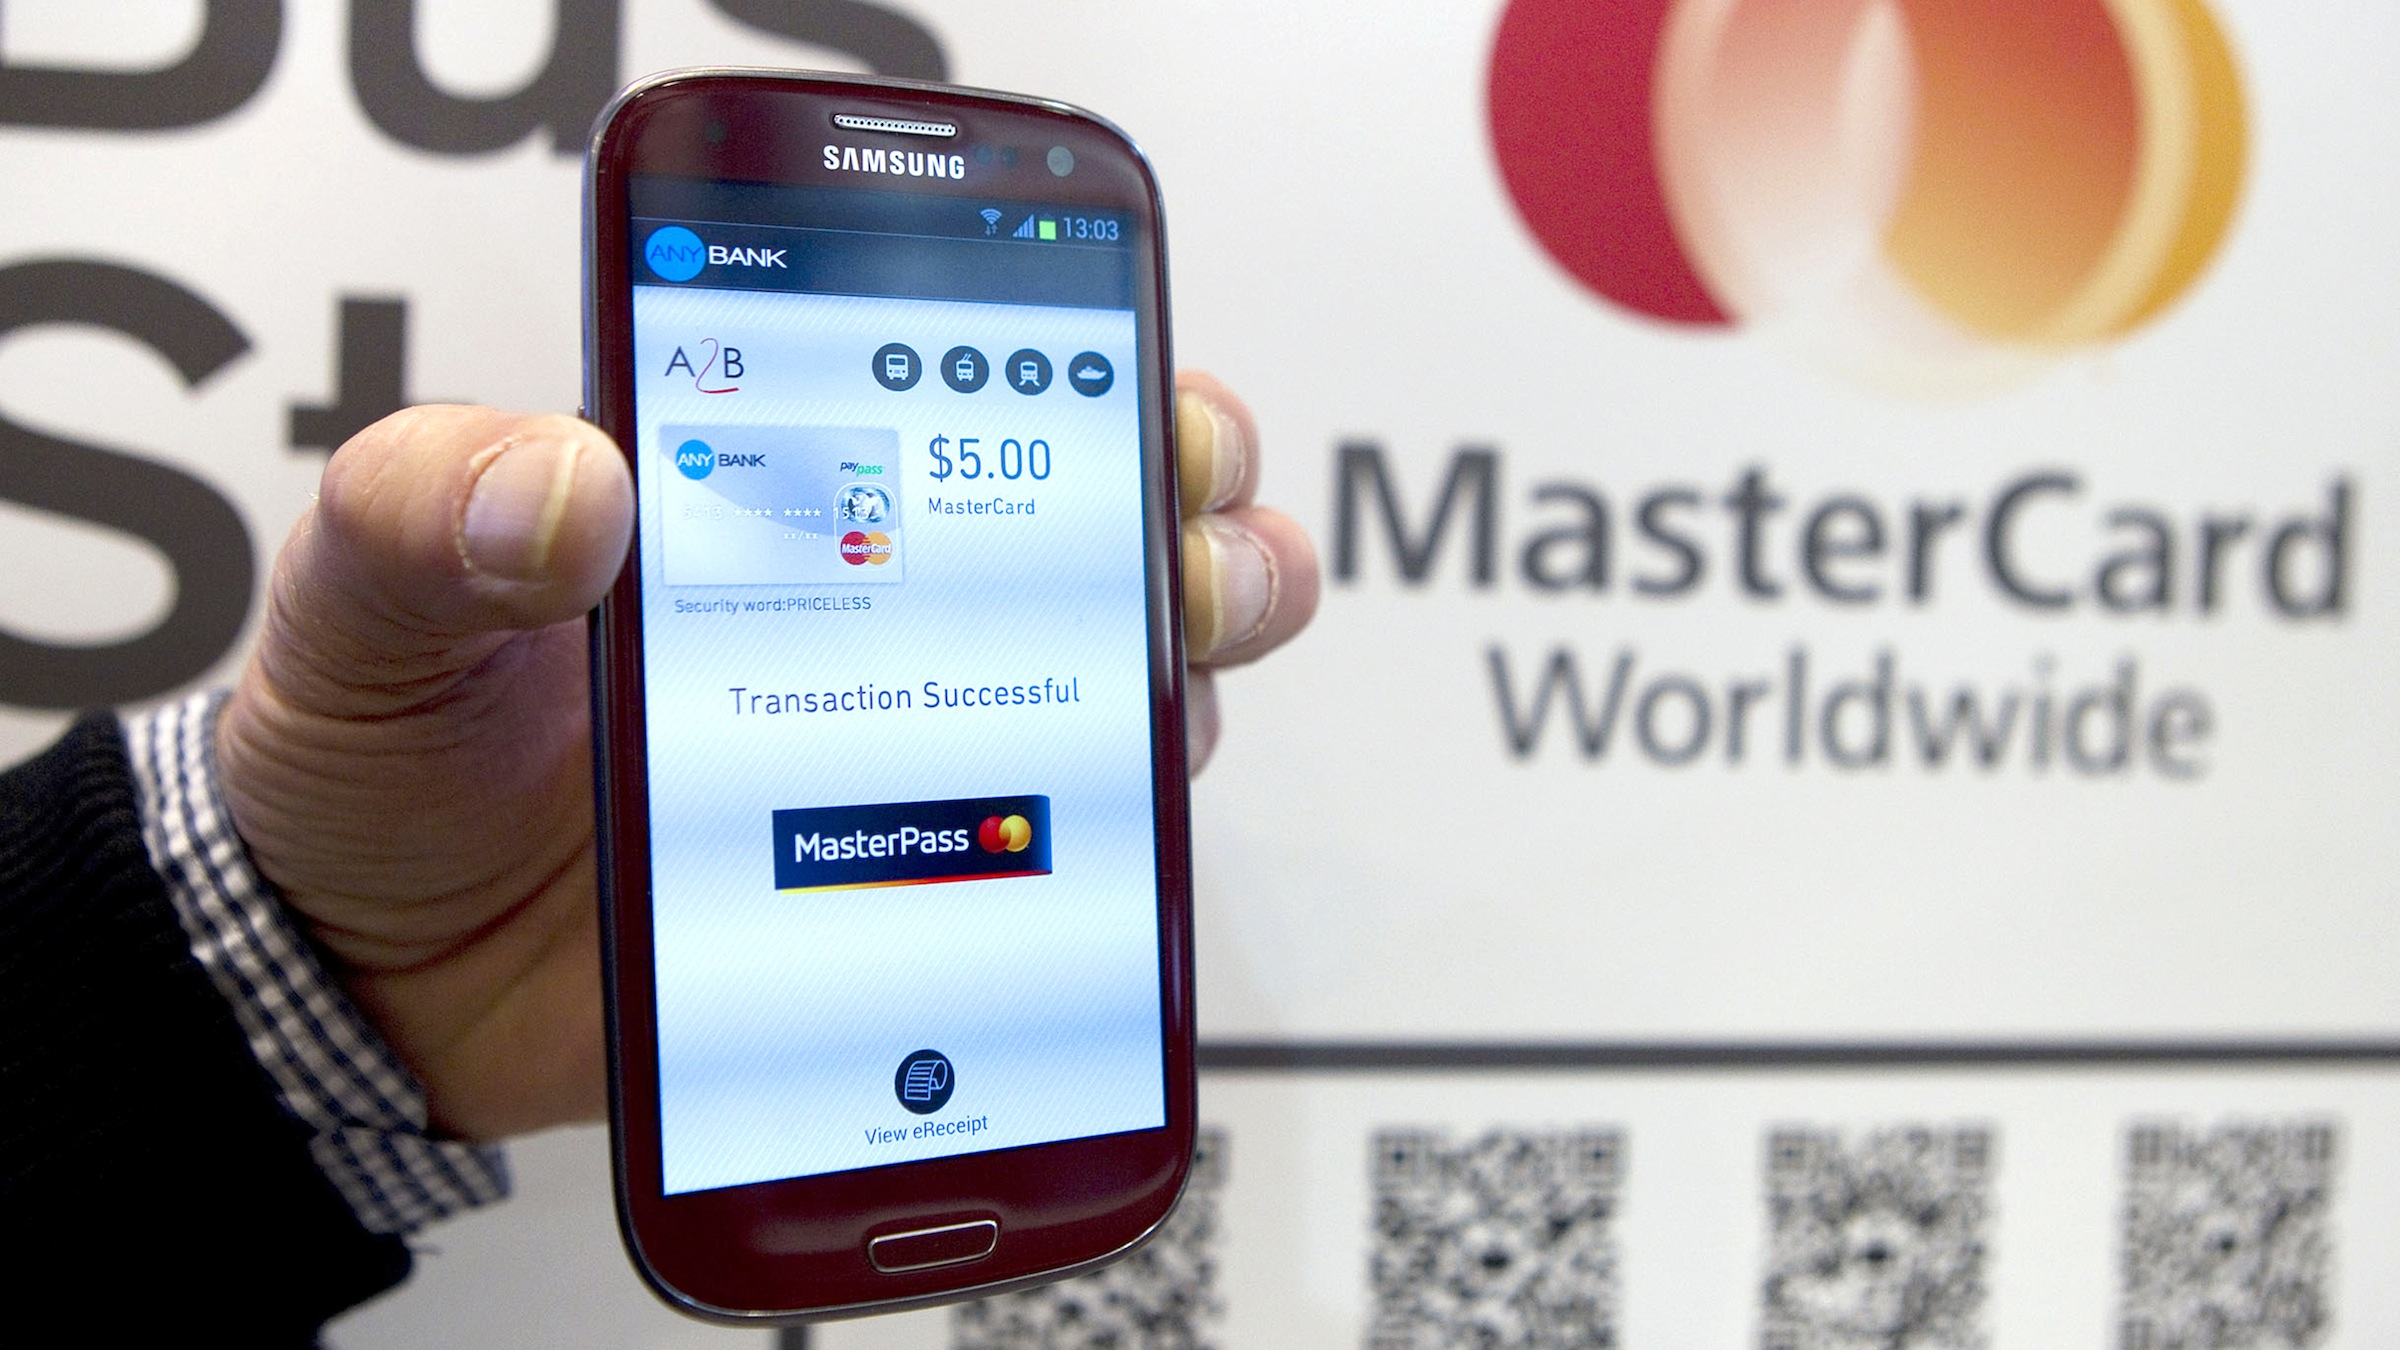 MasterCard showcases the future of payments with MasterPass at the Mobile World Congress . MasterPass is a new digital service that allows consumers to turn any device into a shopping device. Tuesday, Feb. 26, 2013 in Barcelona. (Marcel-li Saenz Martinez/AP Images for MasterCard)